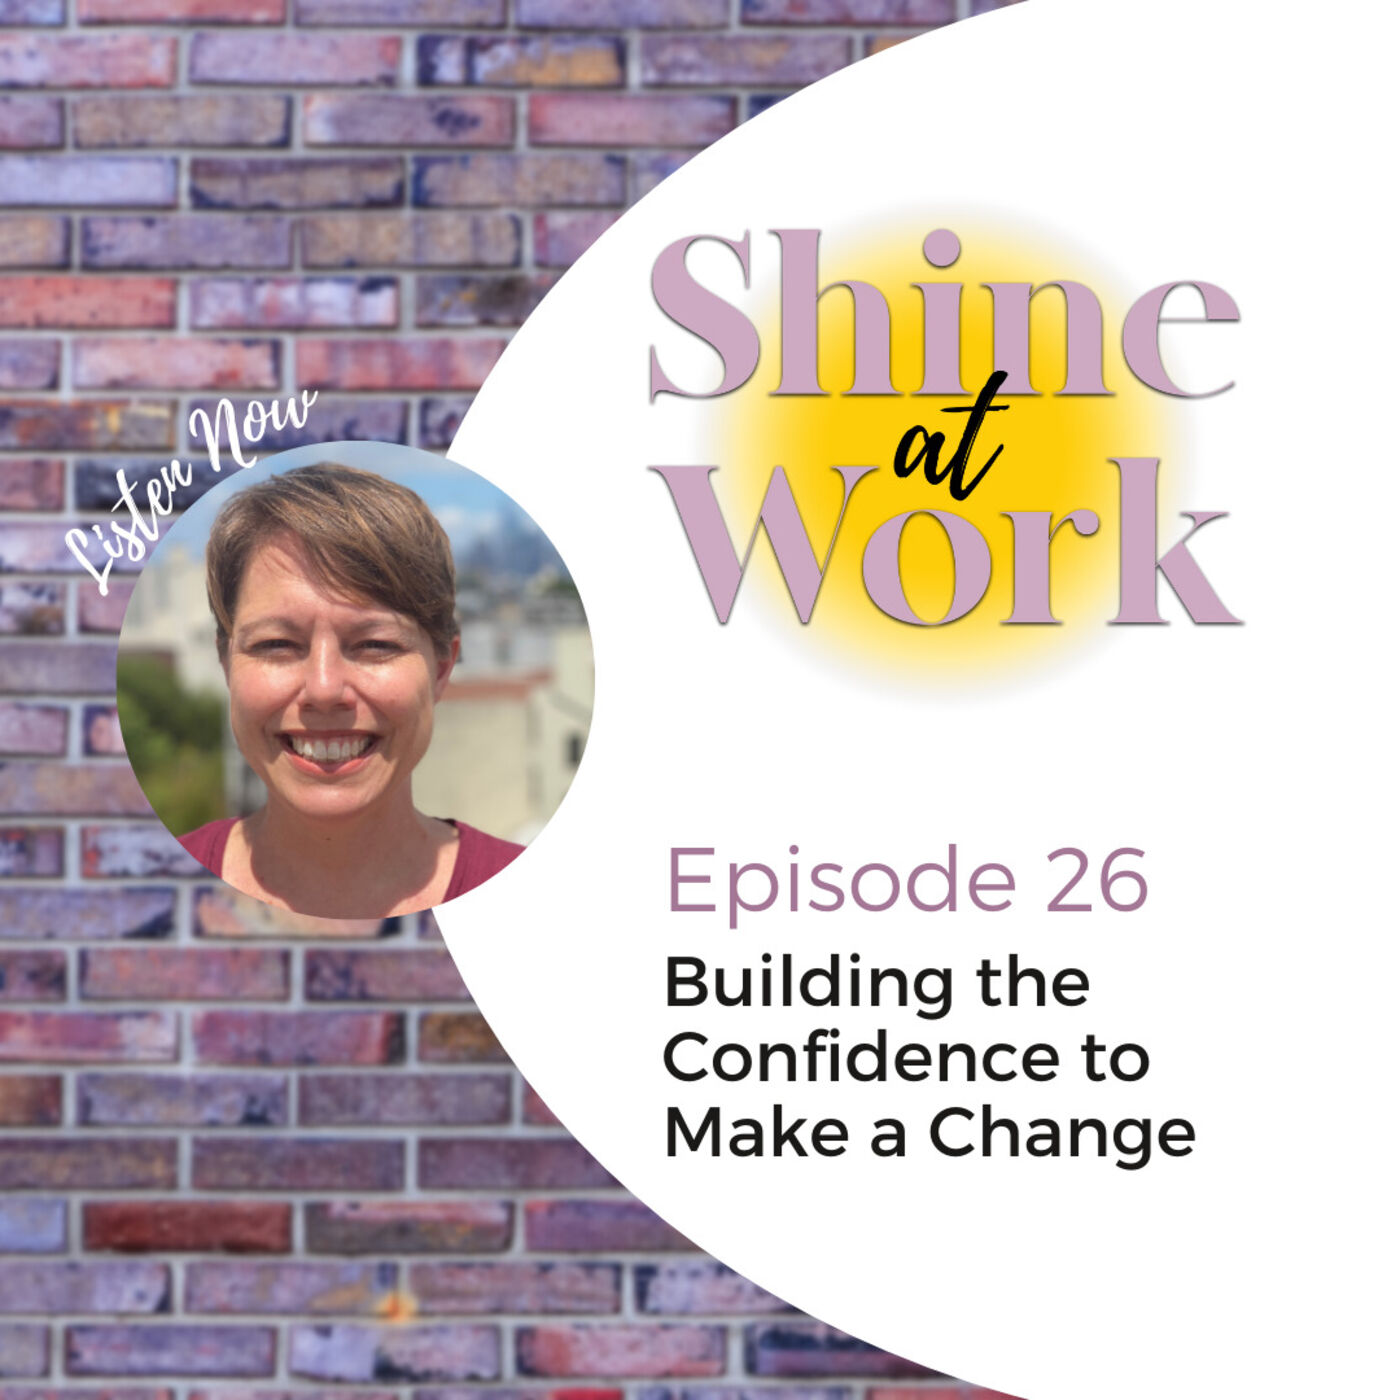 Episode 26 - Building the Confidence to Make a Change